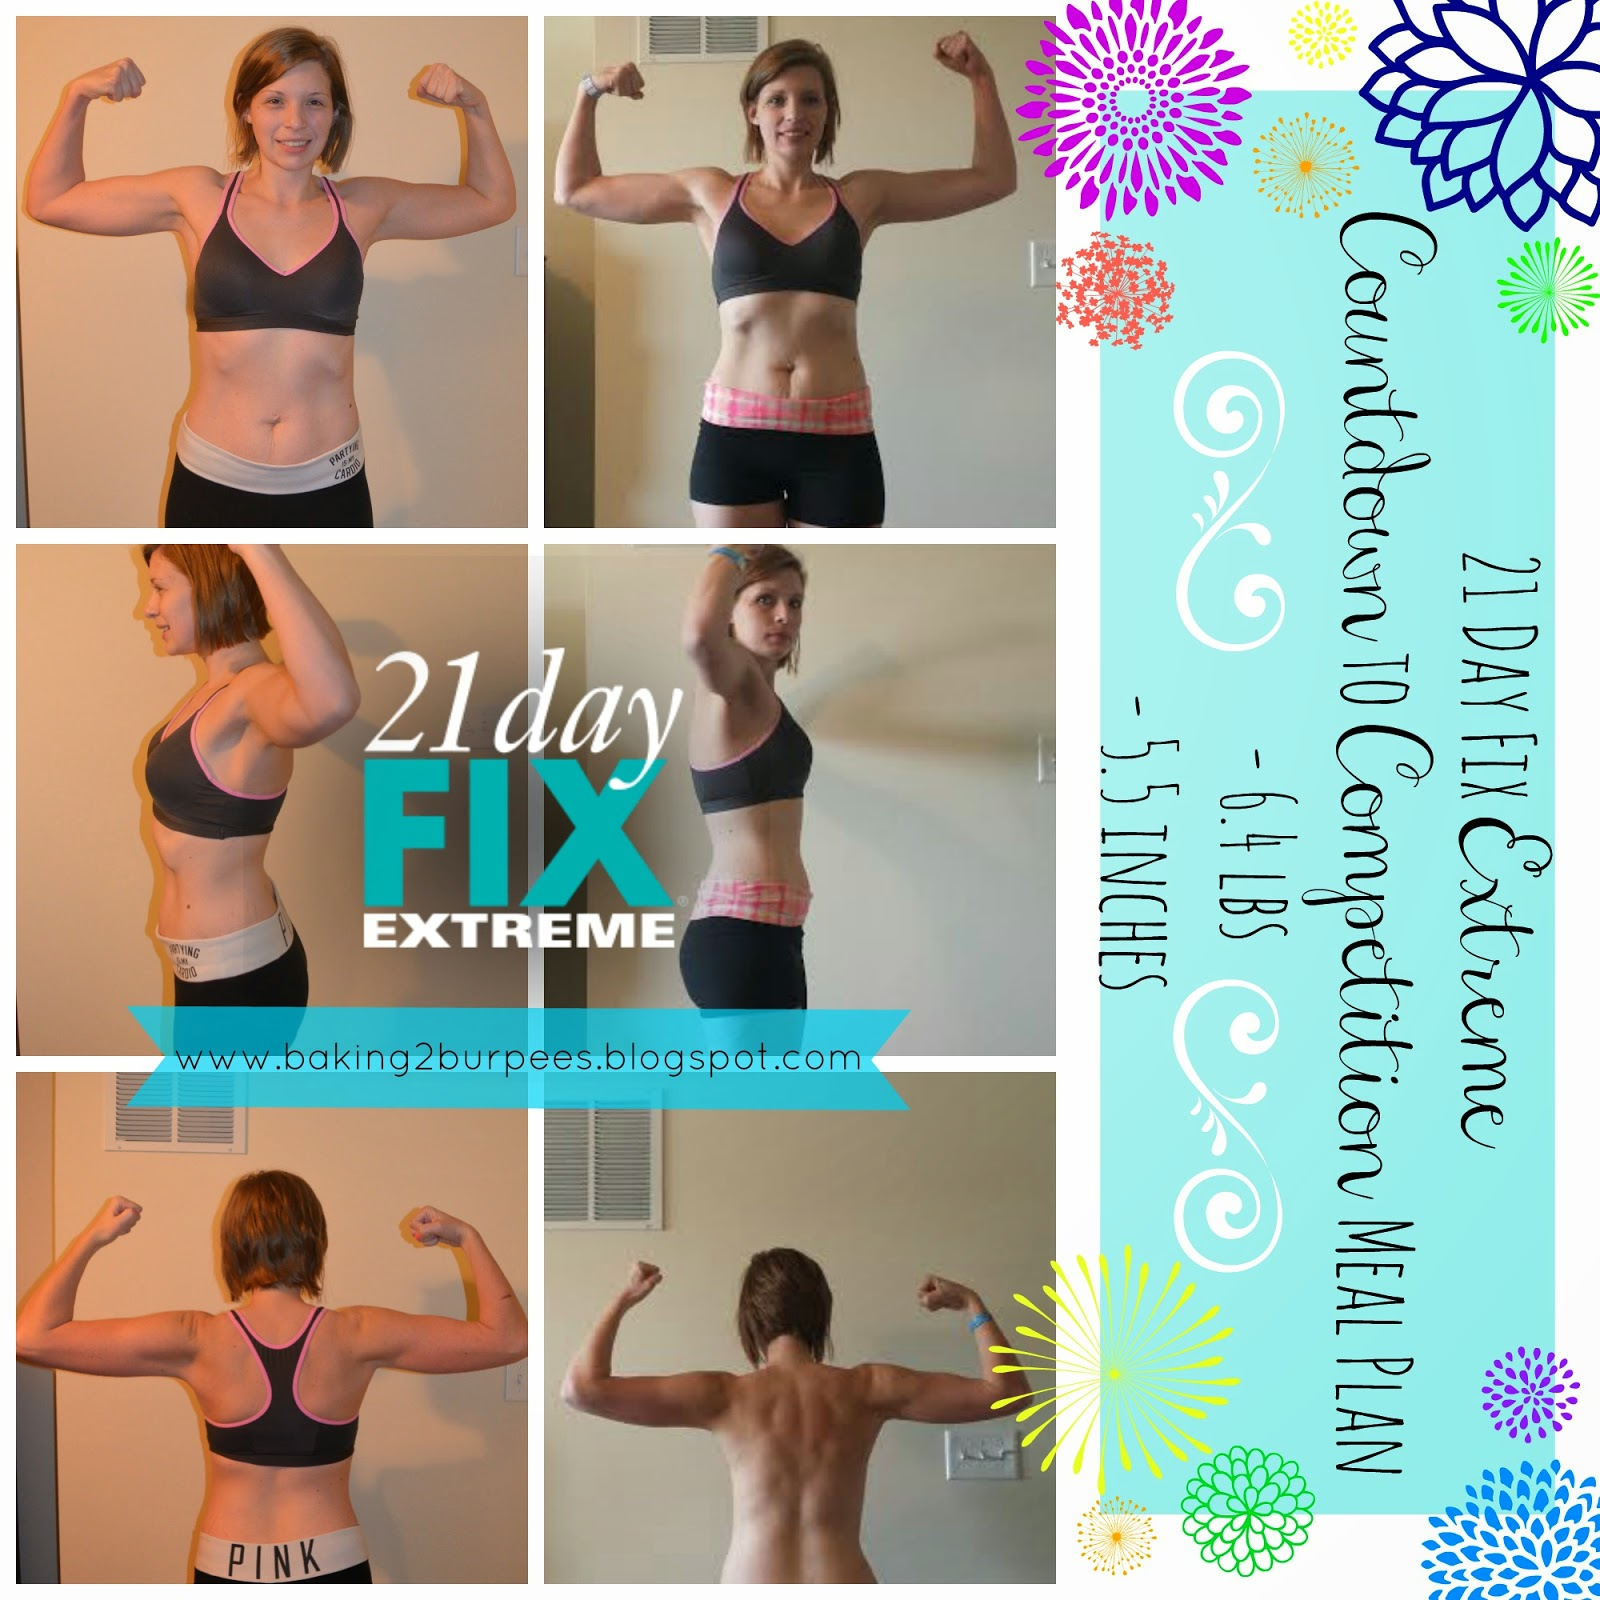 Erin Traill, diamond beachbody coach, 21 day fix extreme, Autumn Calabrese, before and after photos, 21 day fix approved, 21 day fix extreme countdown to competition meal plan,